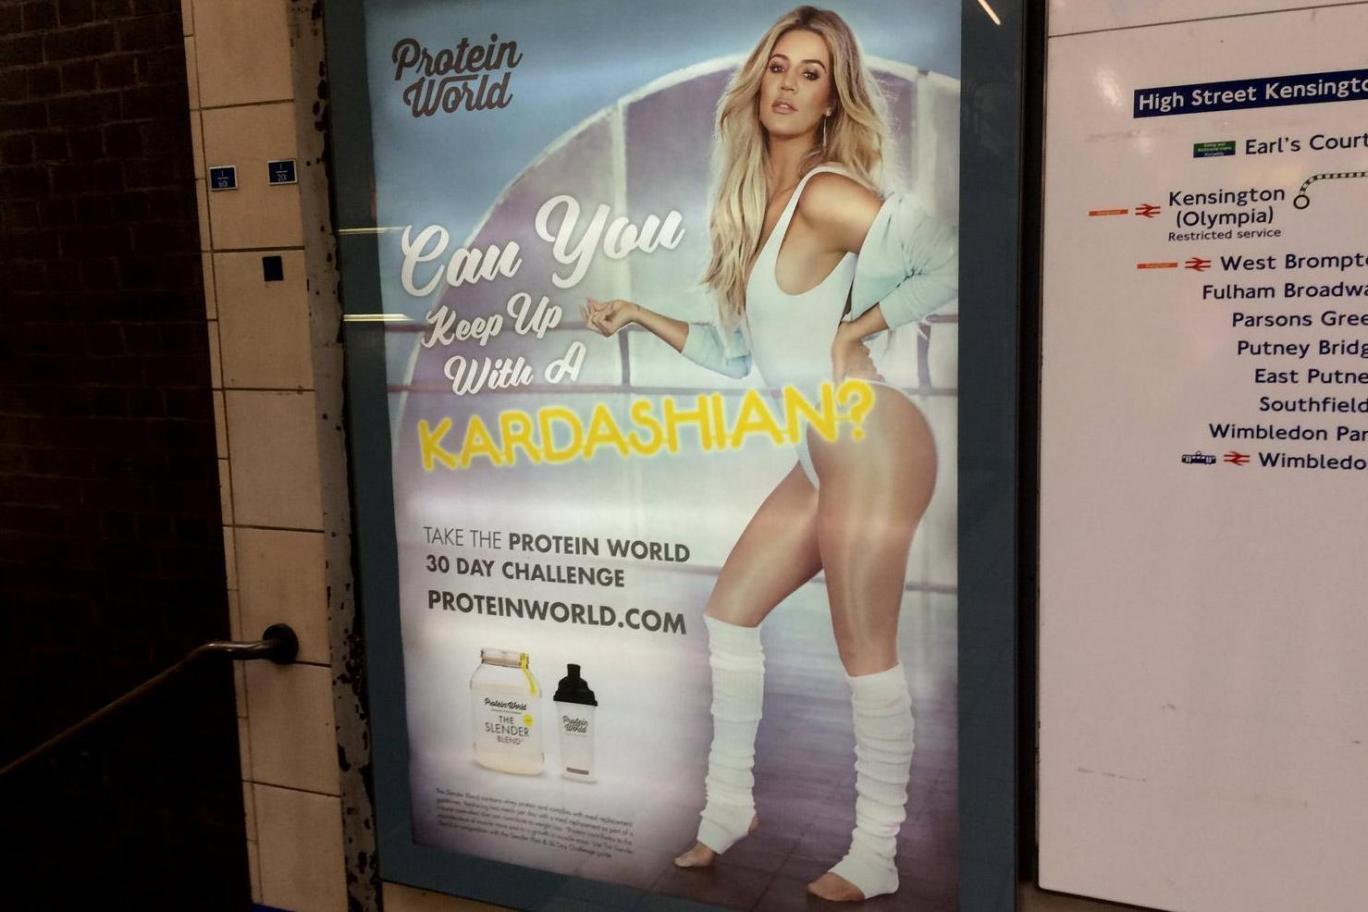 Khloe Kardashian's London ad won't be banned despite complaints over 'body shaming'